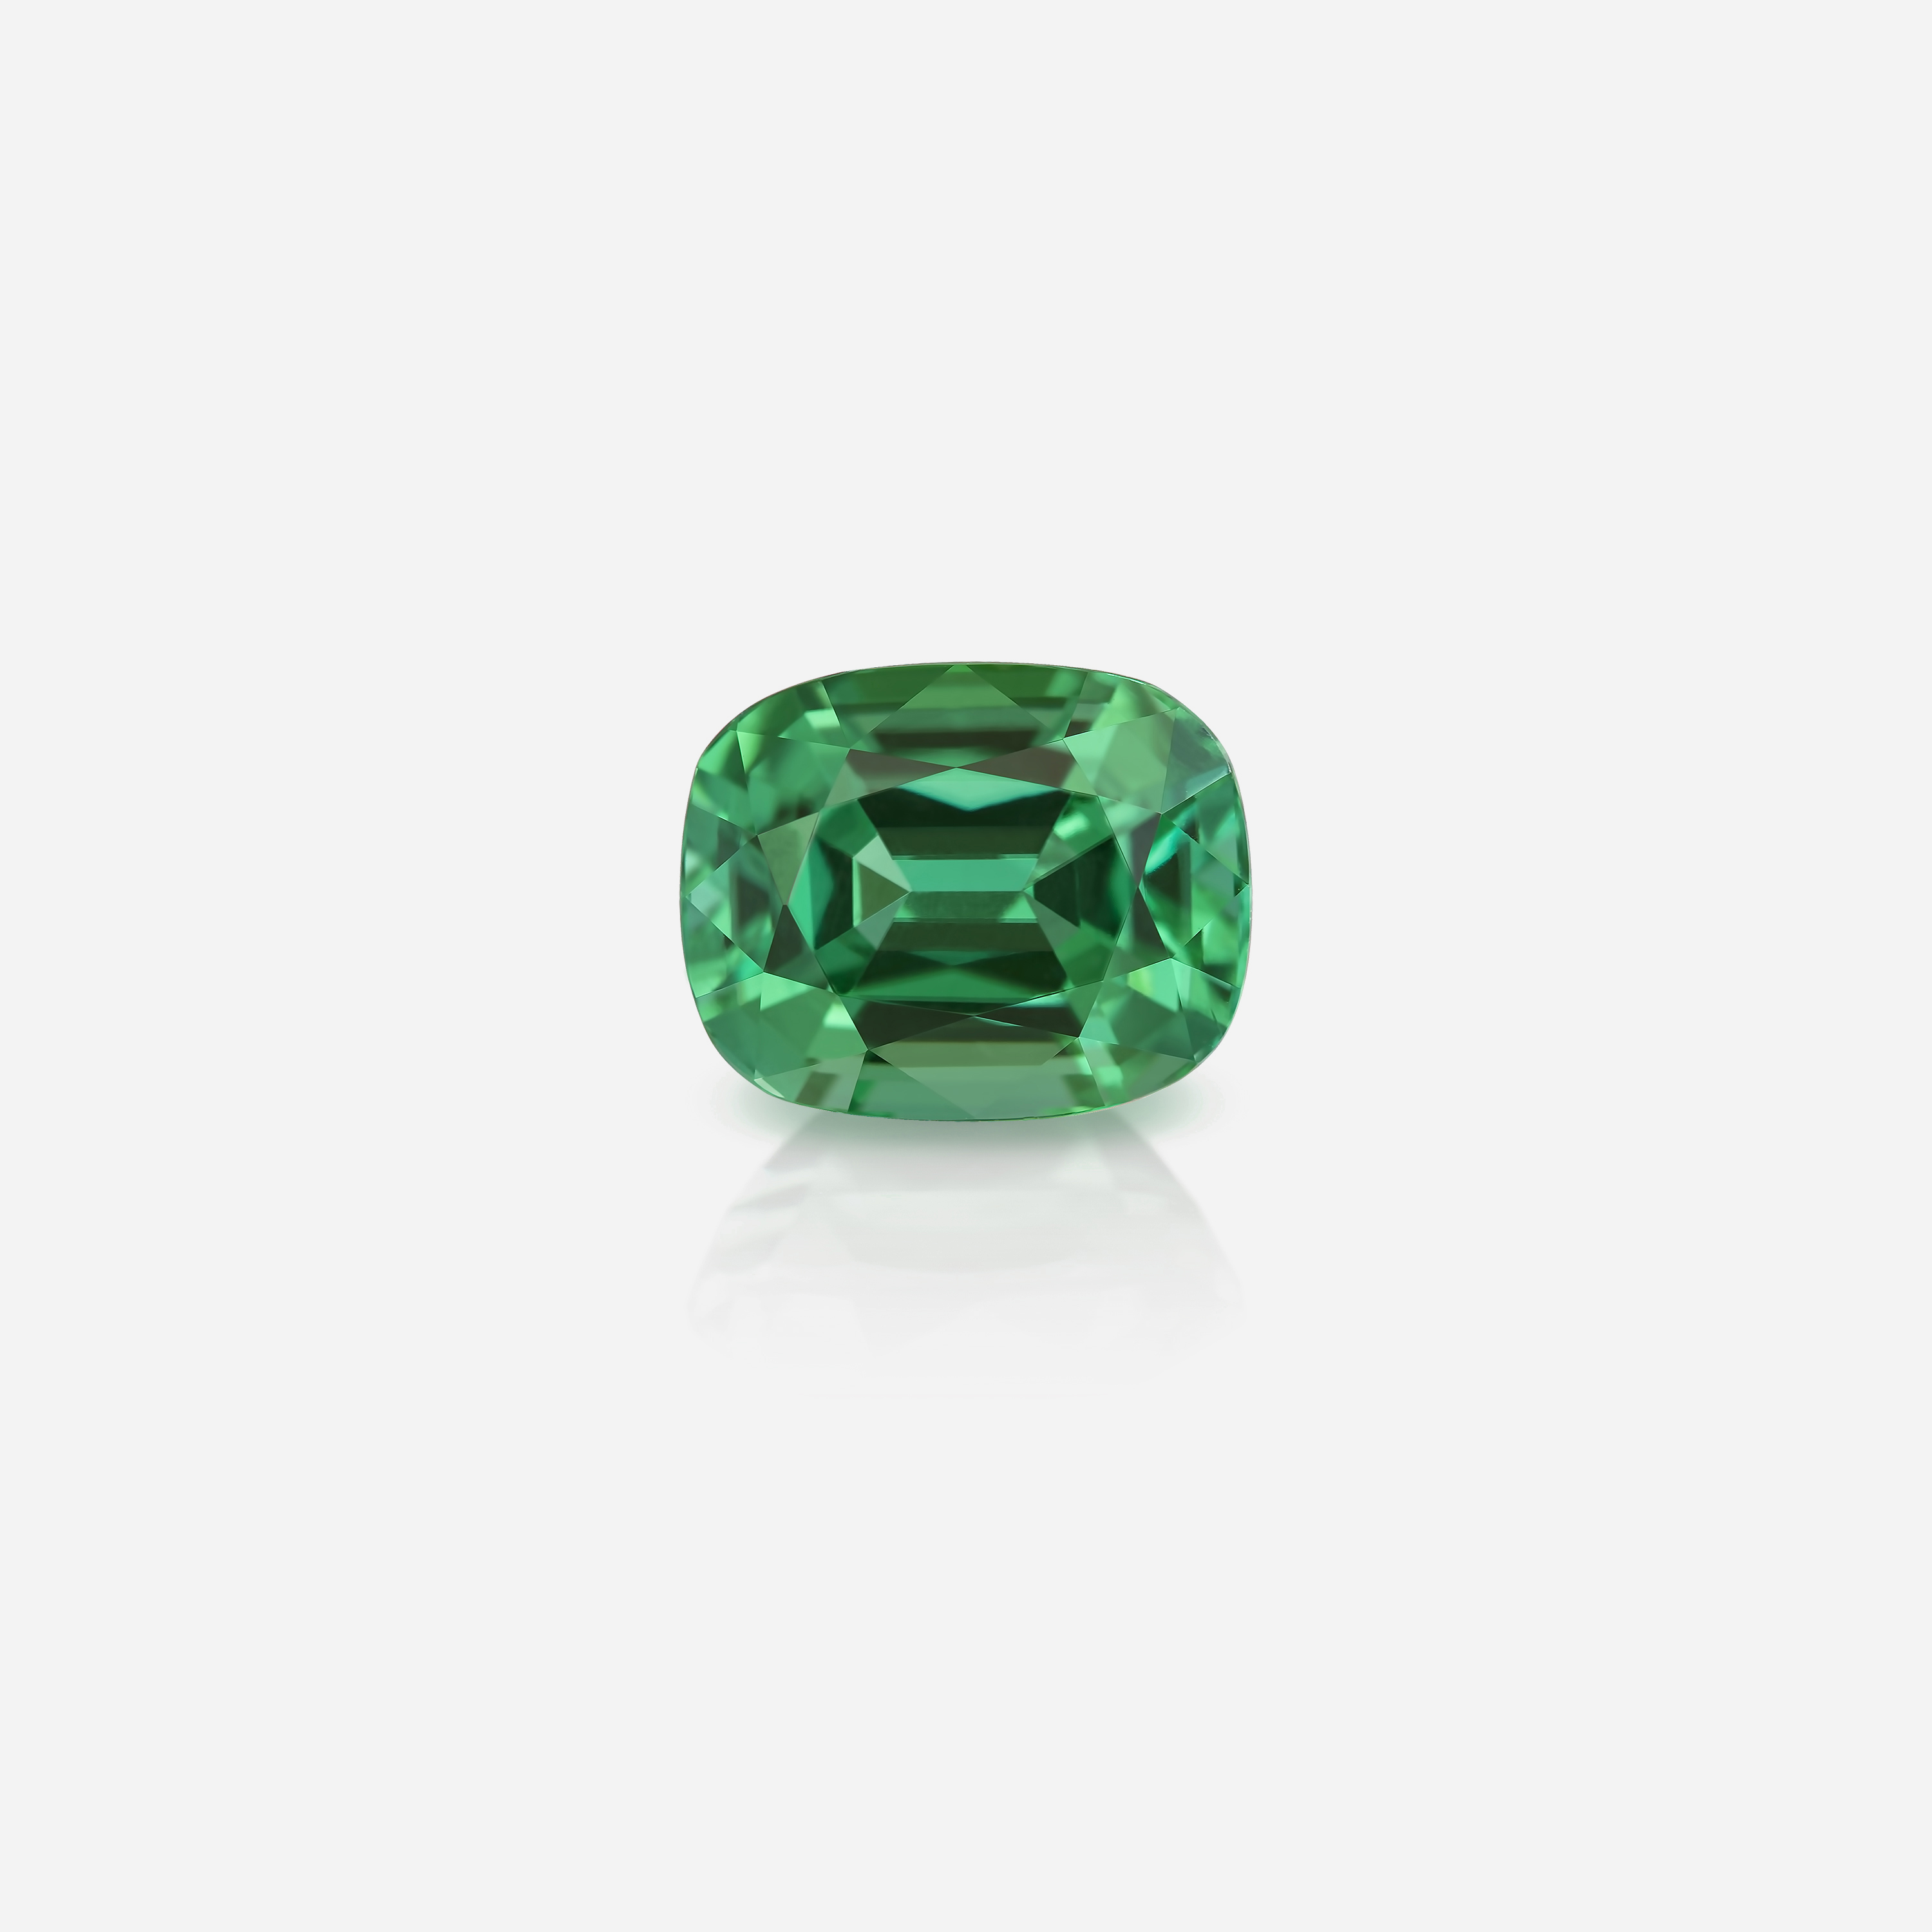 Paraiba Tourmaline, Mozambique, 6ct